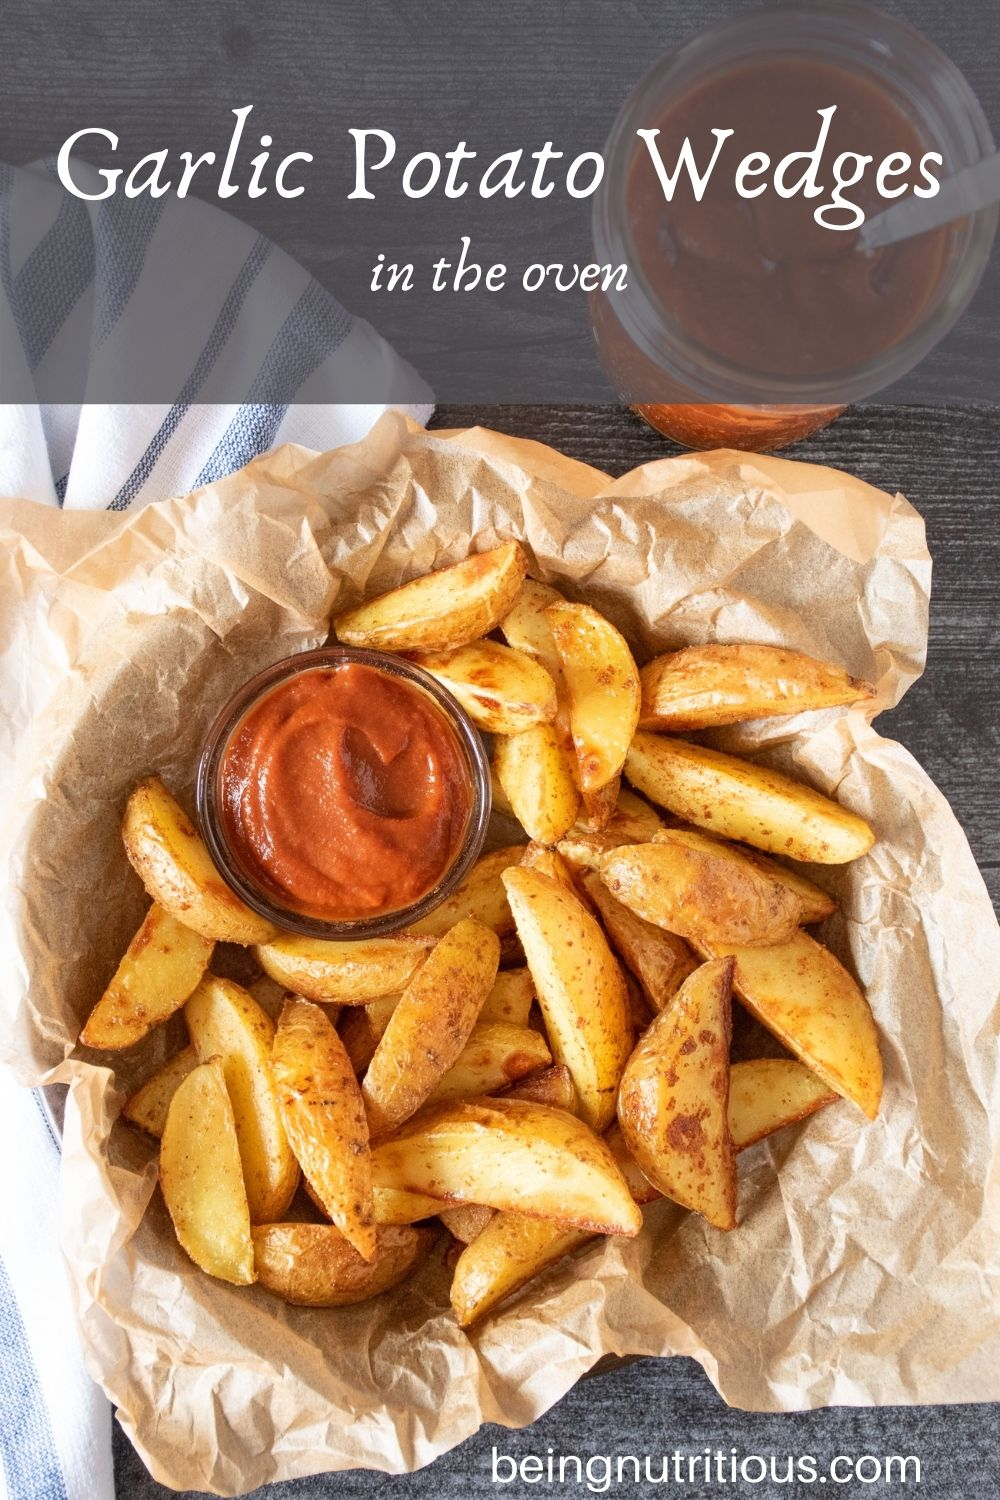 Basket of potato wedges with a small bowl of ketchup. Text overlay: Garlic Potato Wedges in the Oven.